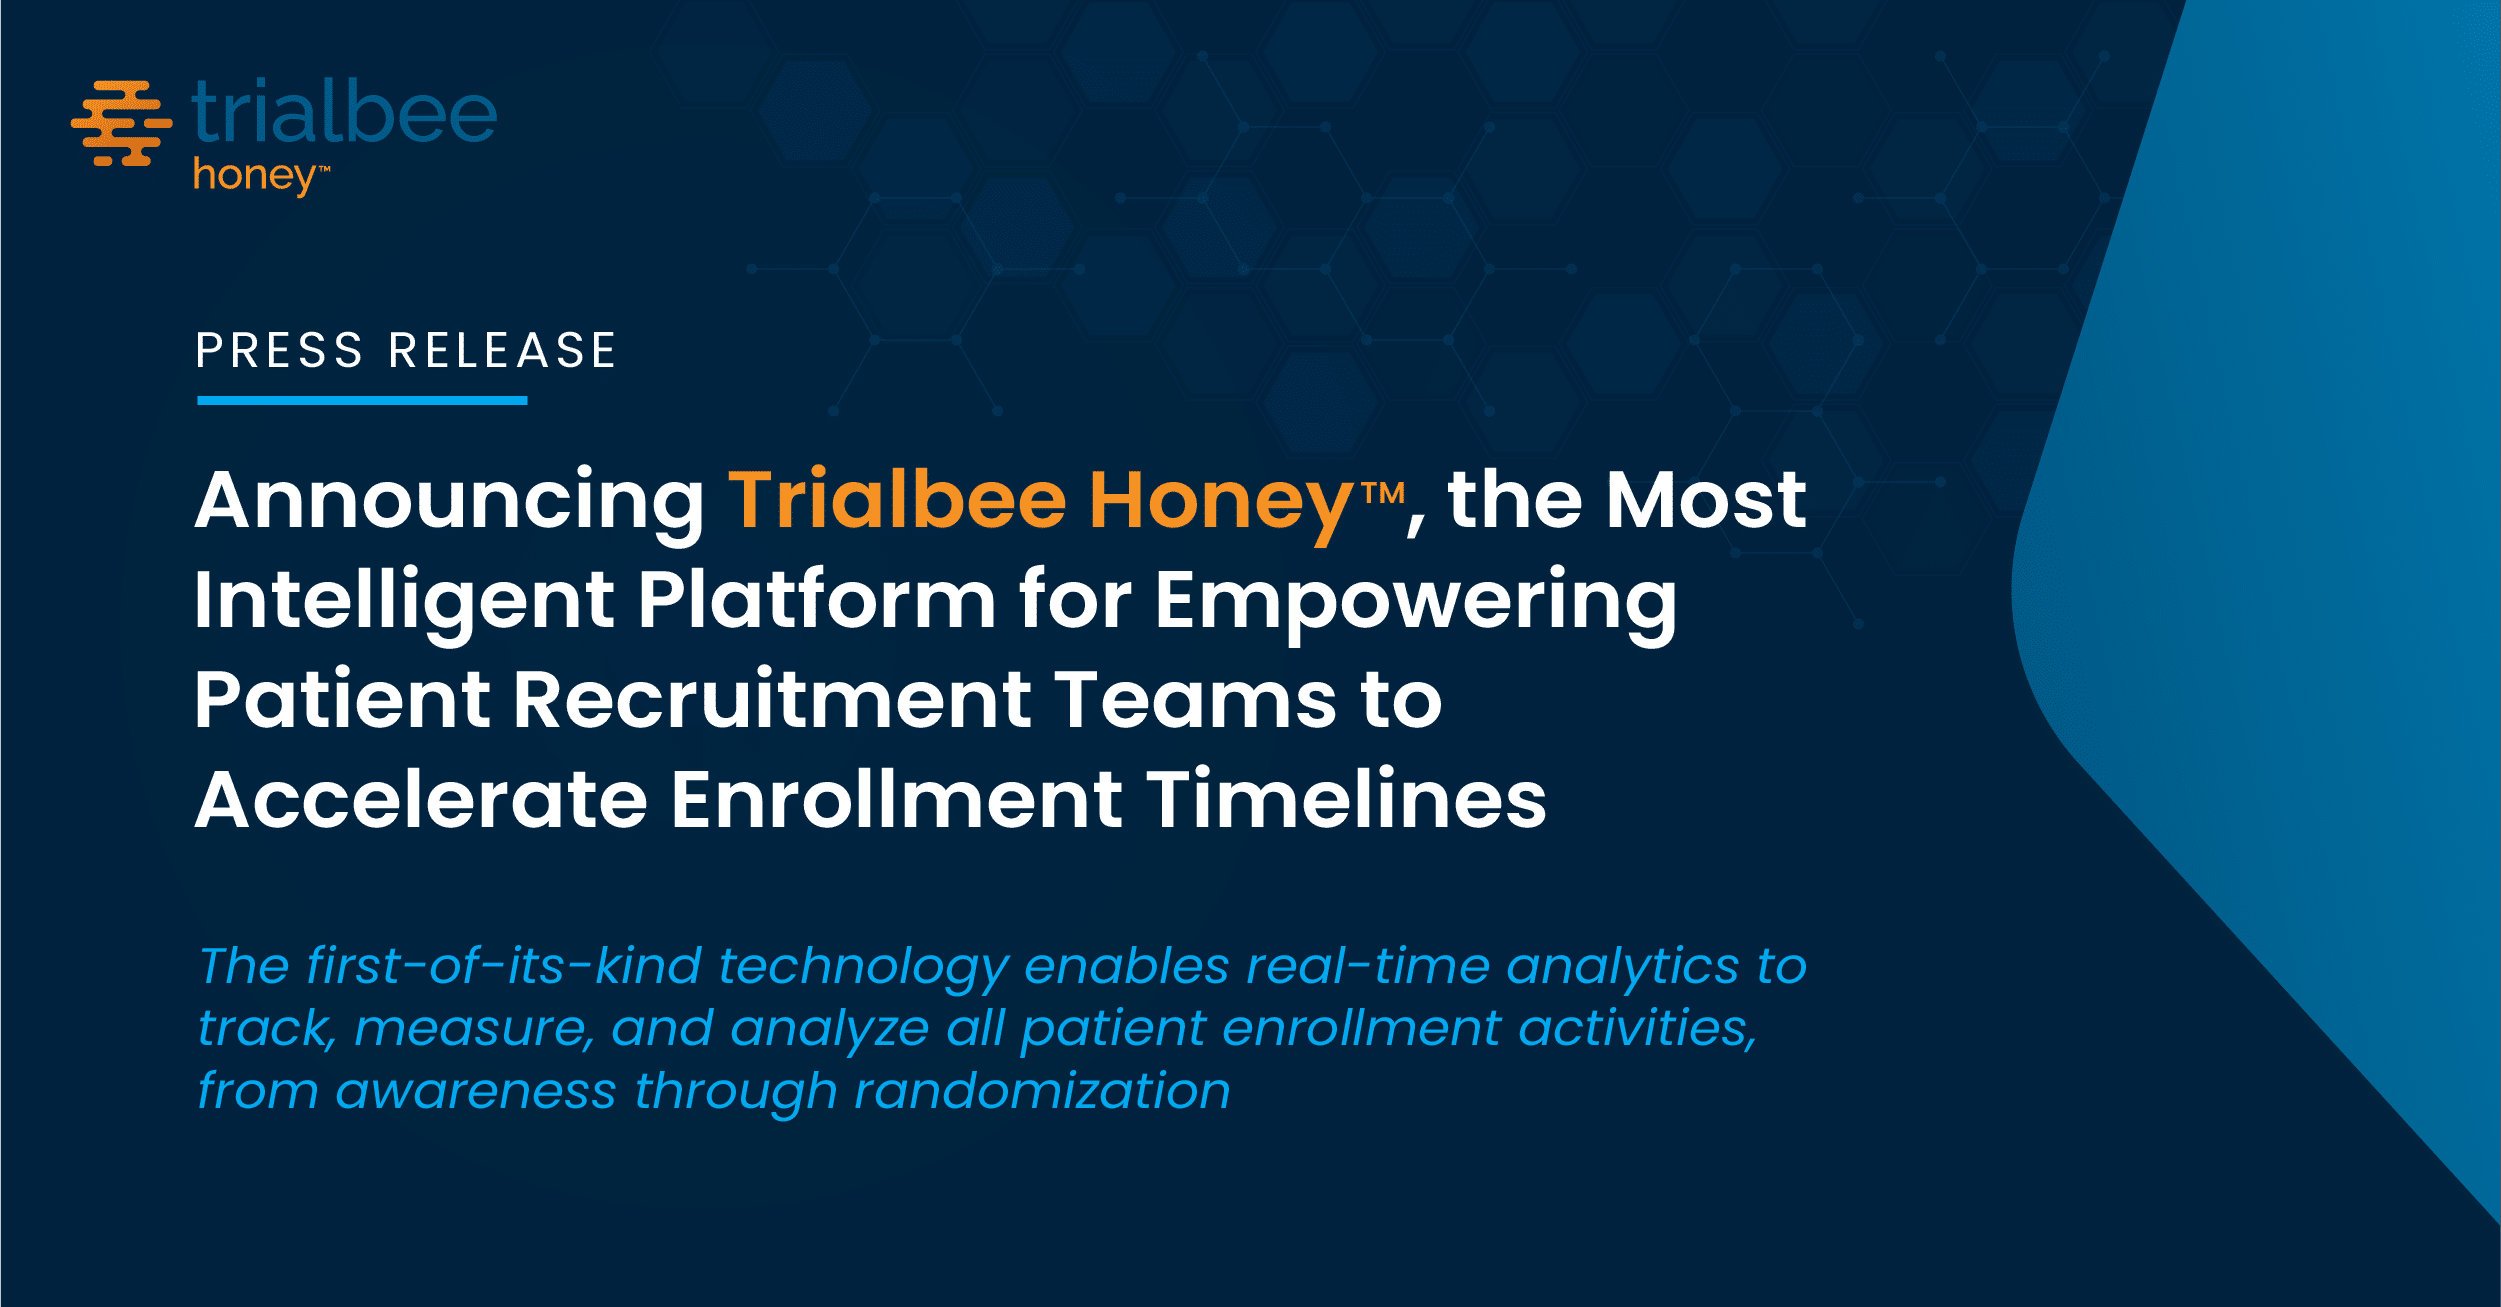 Announcing Trialbee Honey™, the Most Intelligent Platform for Empowering Patient Recruitment Teams to Accelerate Enrollment Timelines